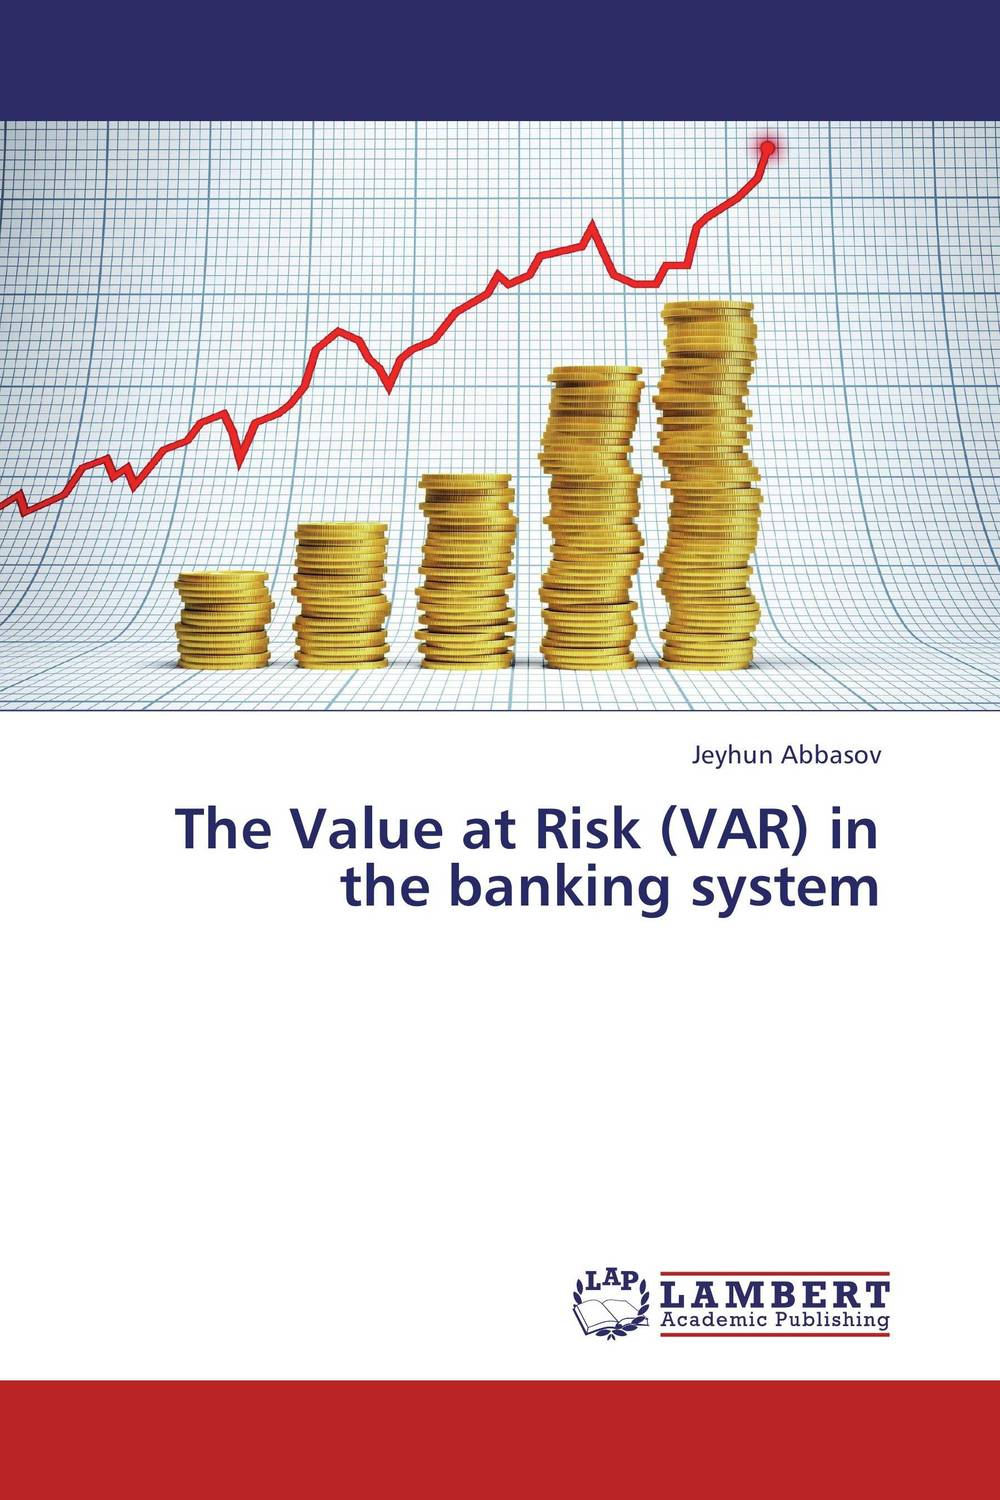 The Value at Risk (VAR) in the banking system